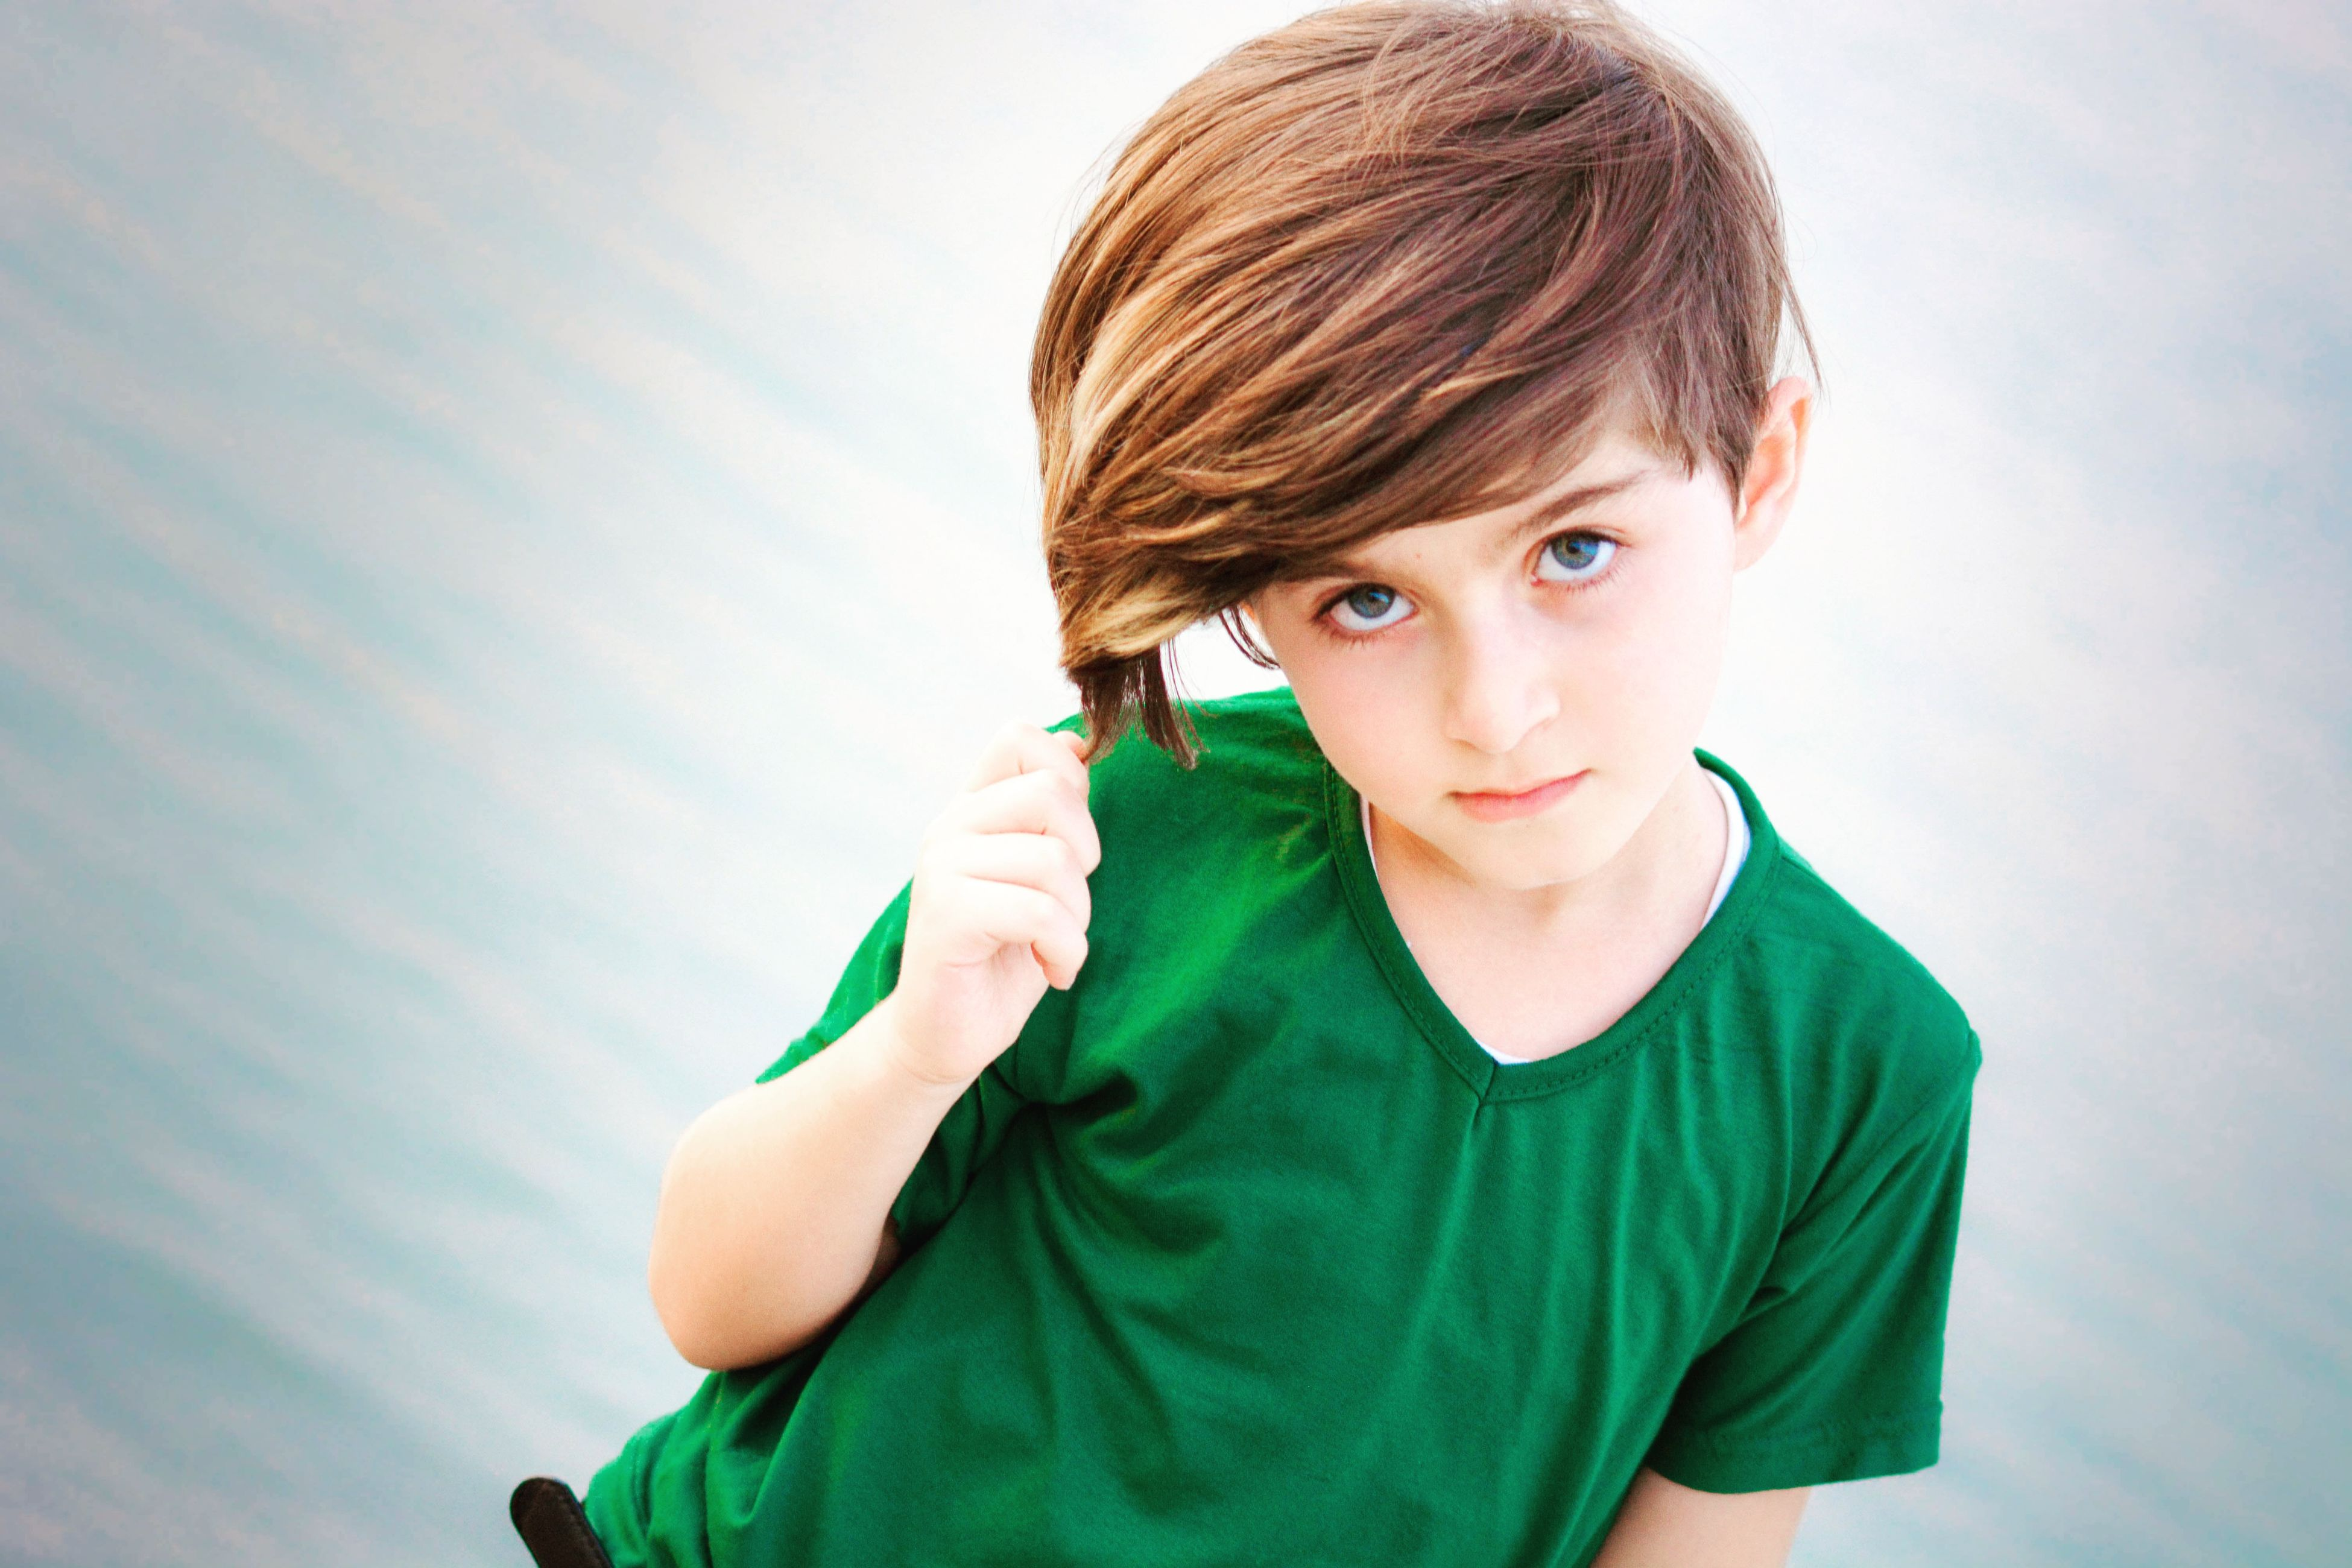 child, childhood, sky, portrait, looking at camera, one person, boys, males, children only, green color, one boy only, people, outdoors, close-up, day, freckle, human body part